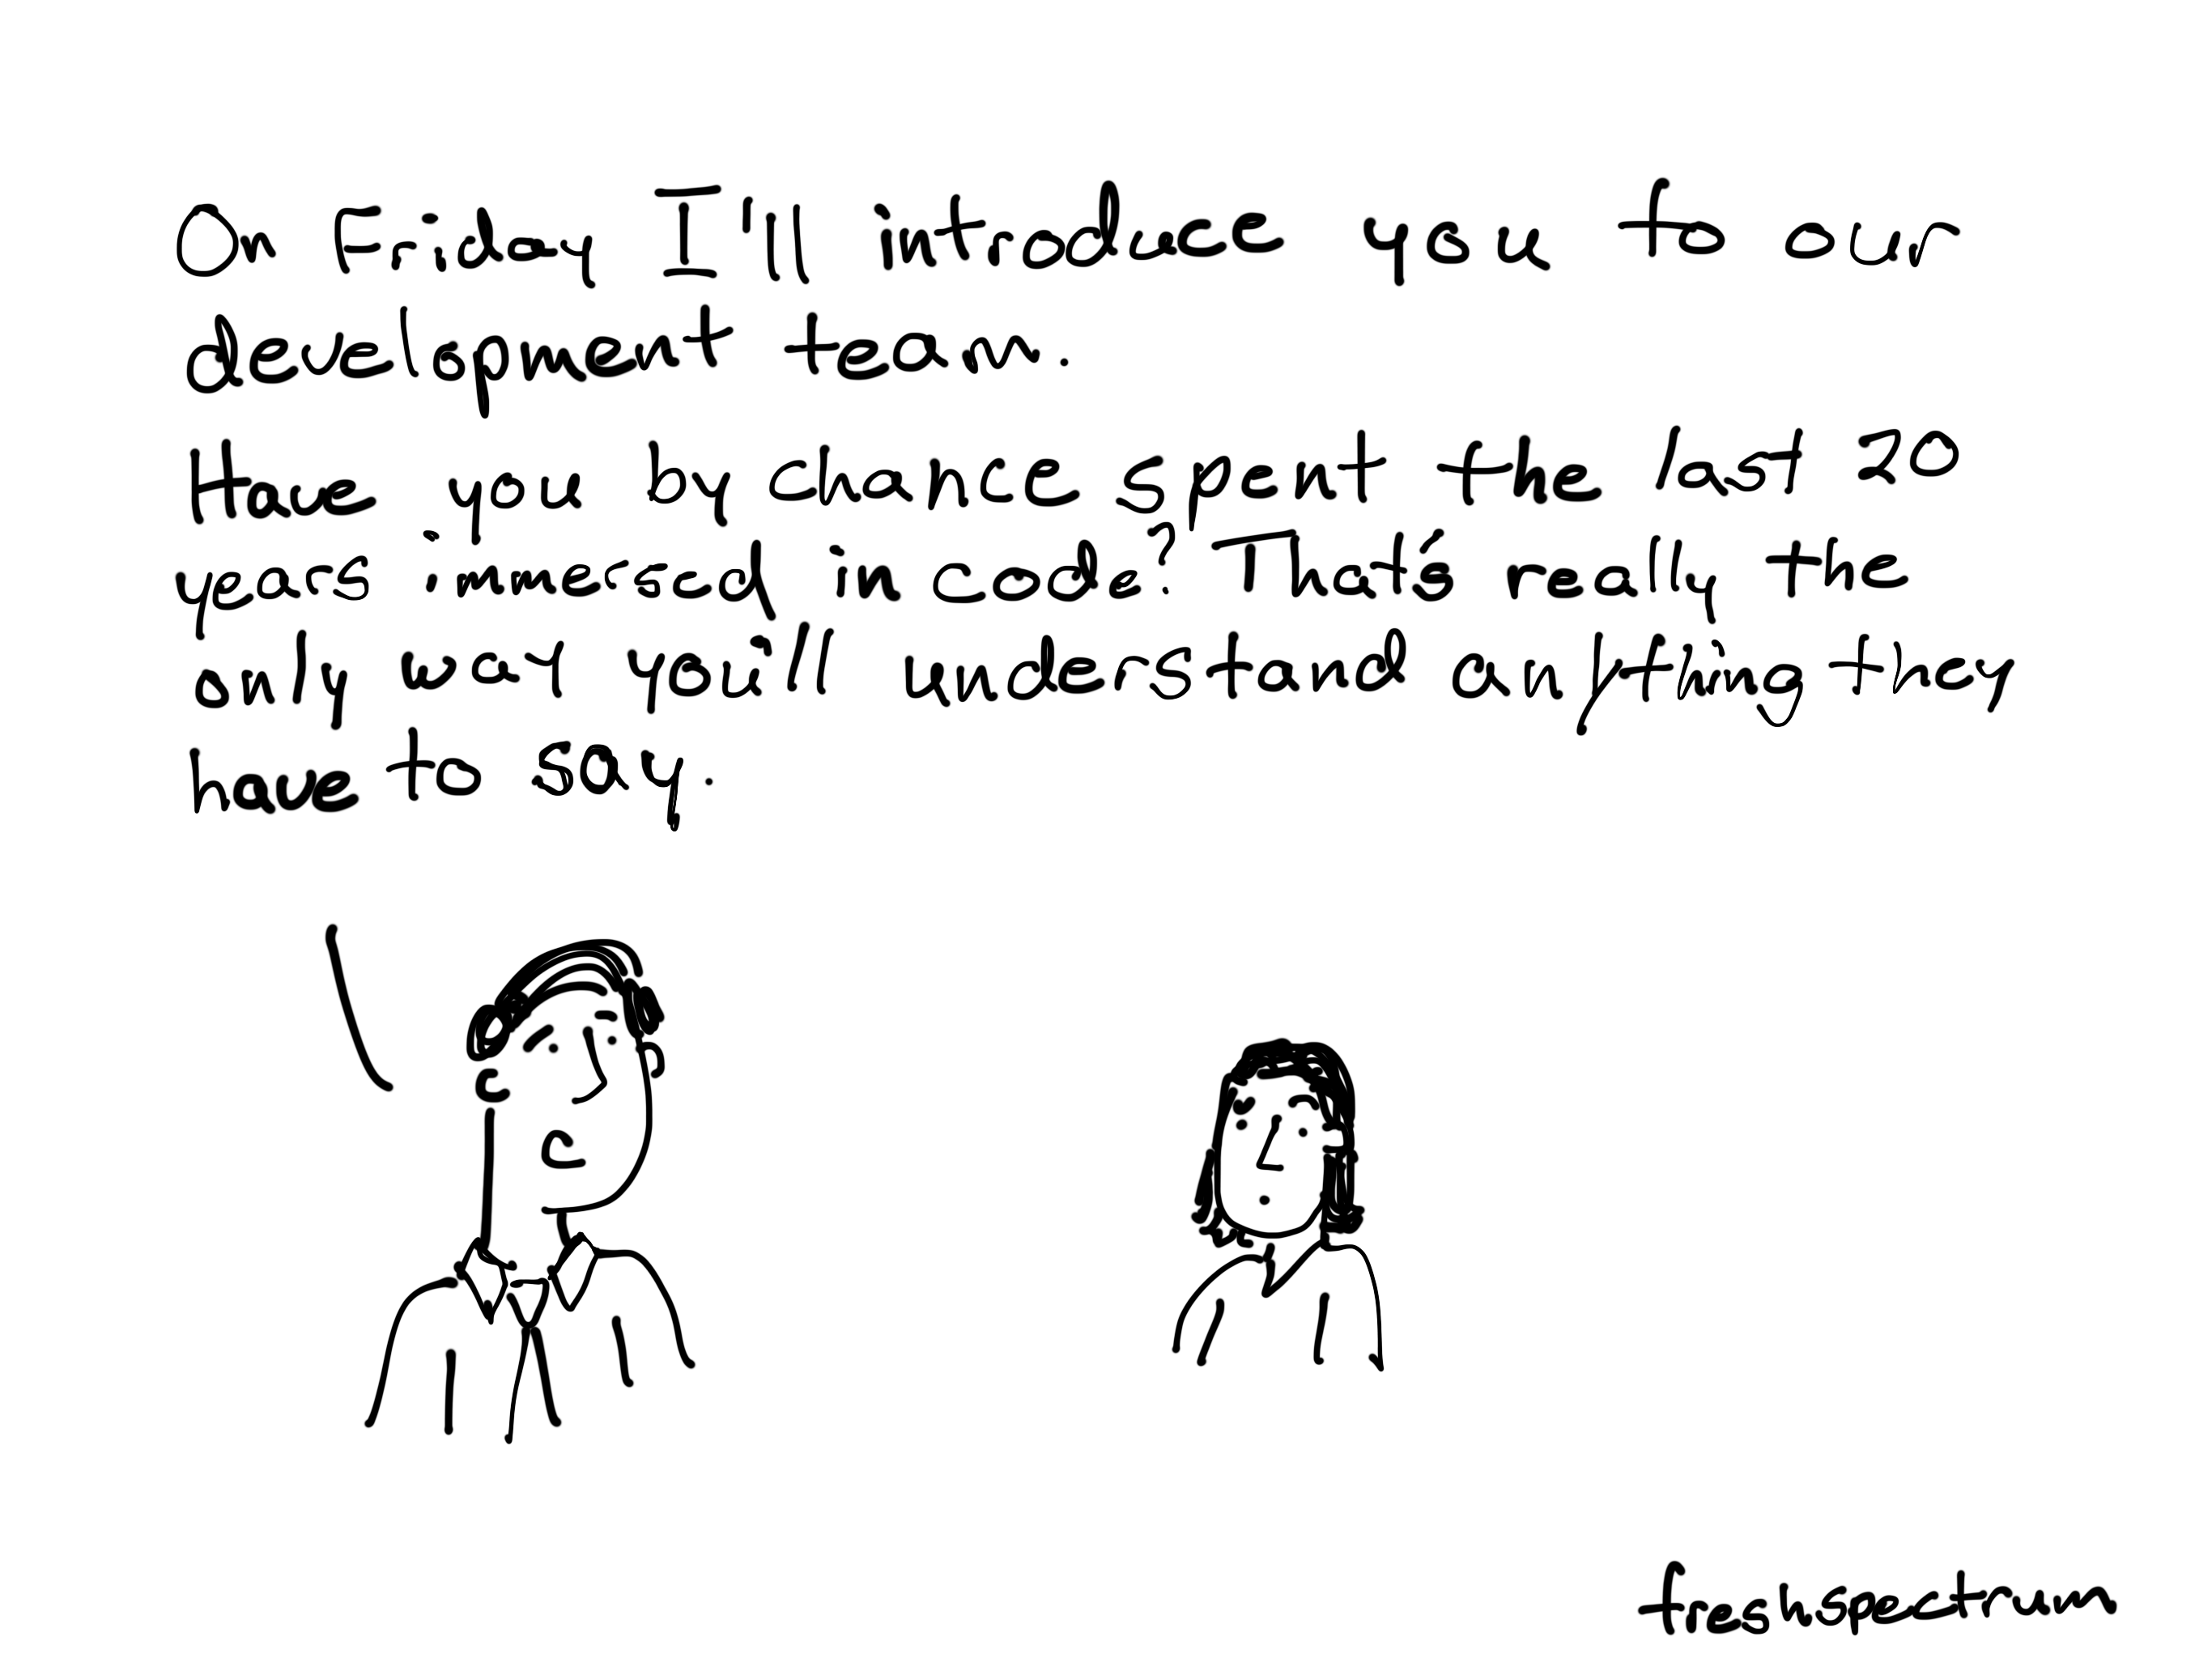 On Frida I'll introduce you to our development team. Have you by chance spent the last 20 years immersed in code. That's really the only way you'll understand anything they have to say.